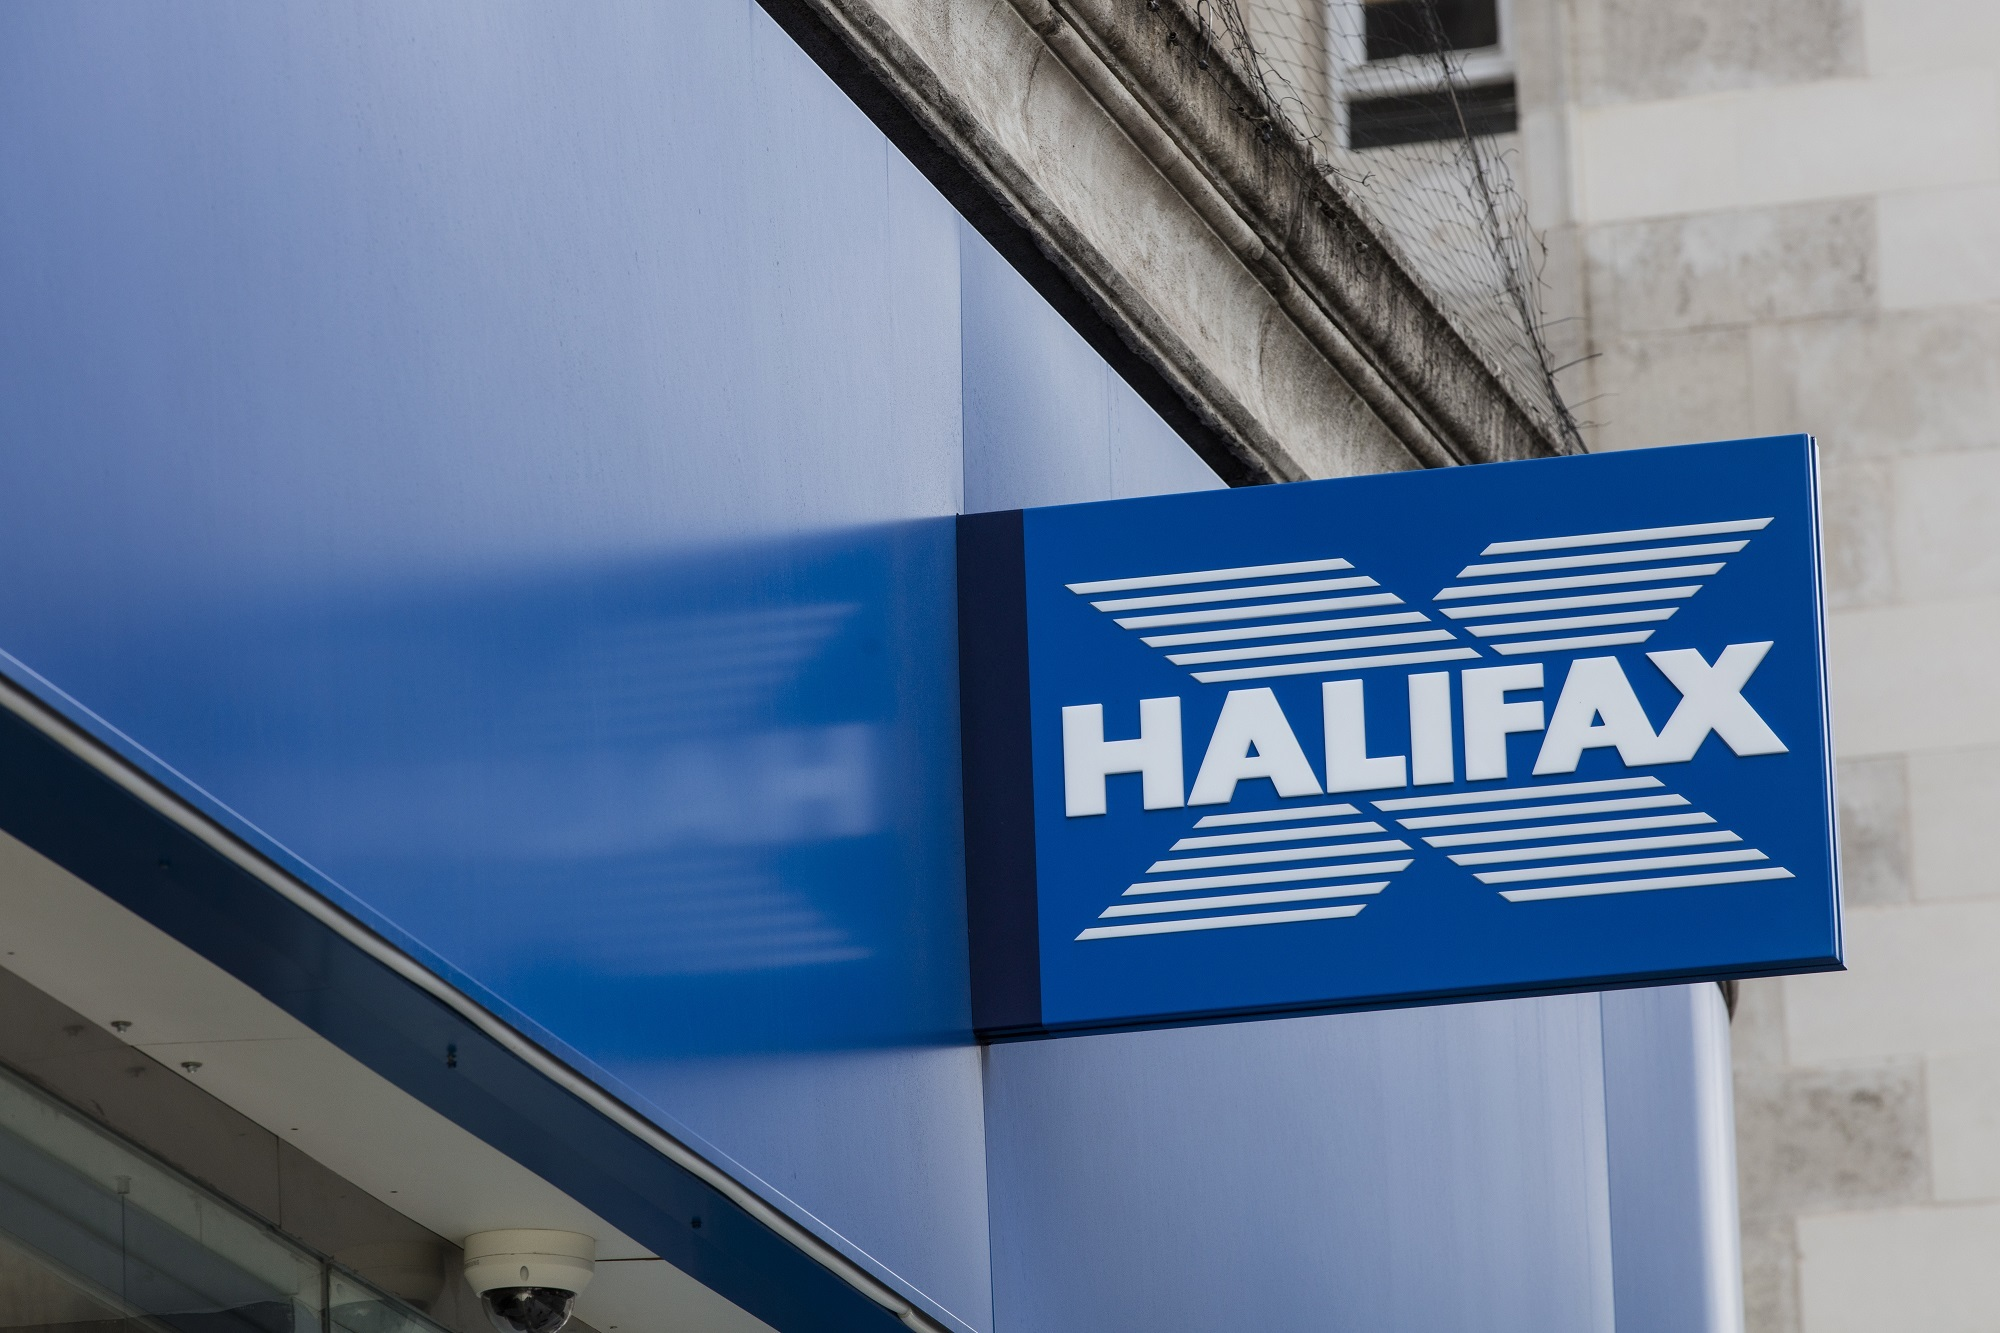 Halifax Business Loans And Finance Options Fleximize